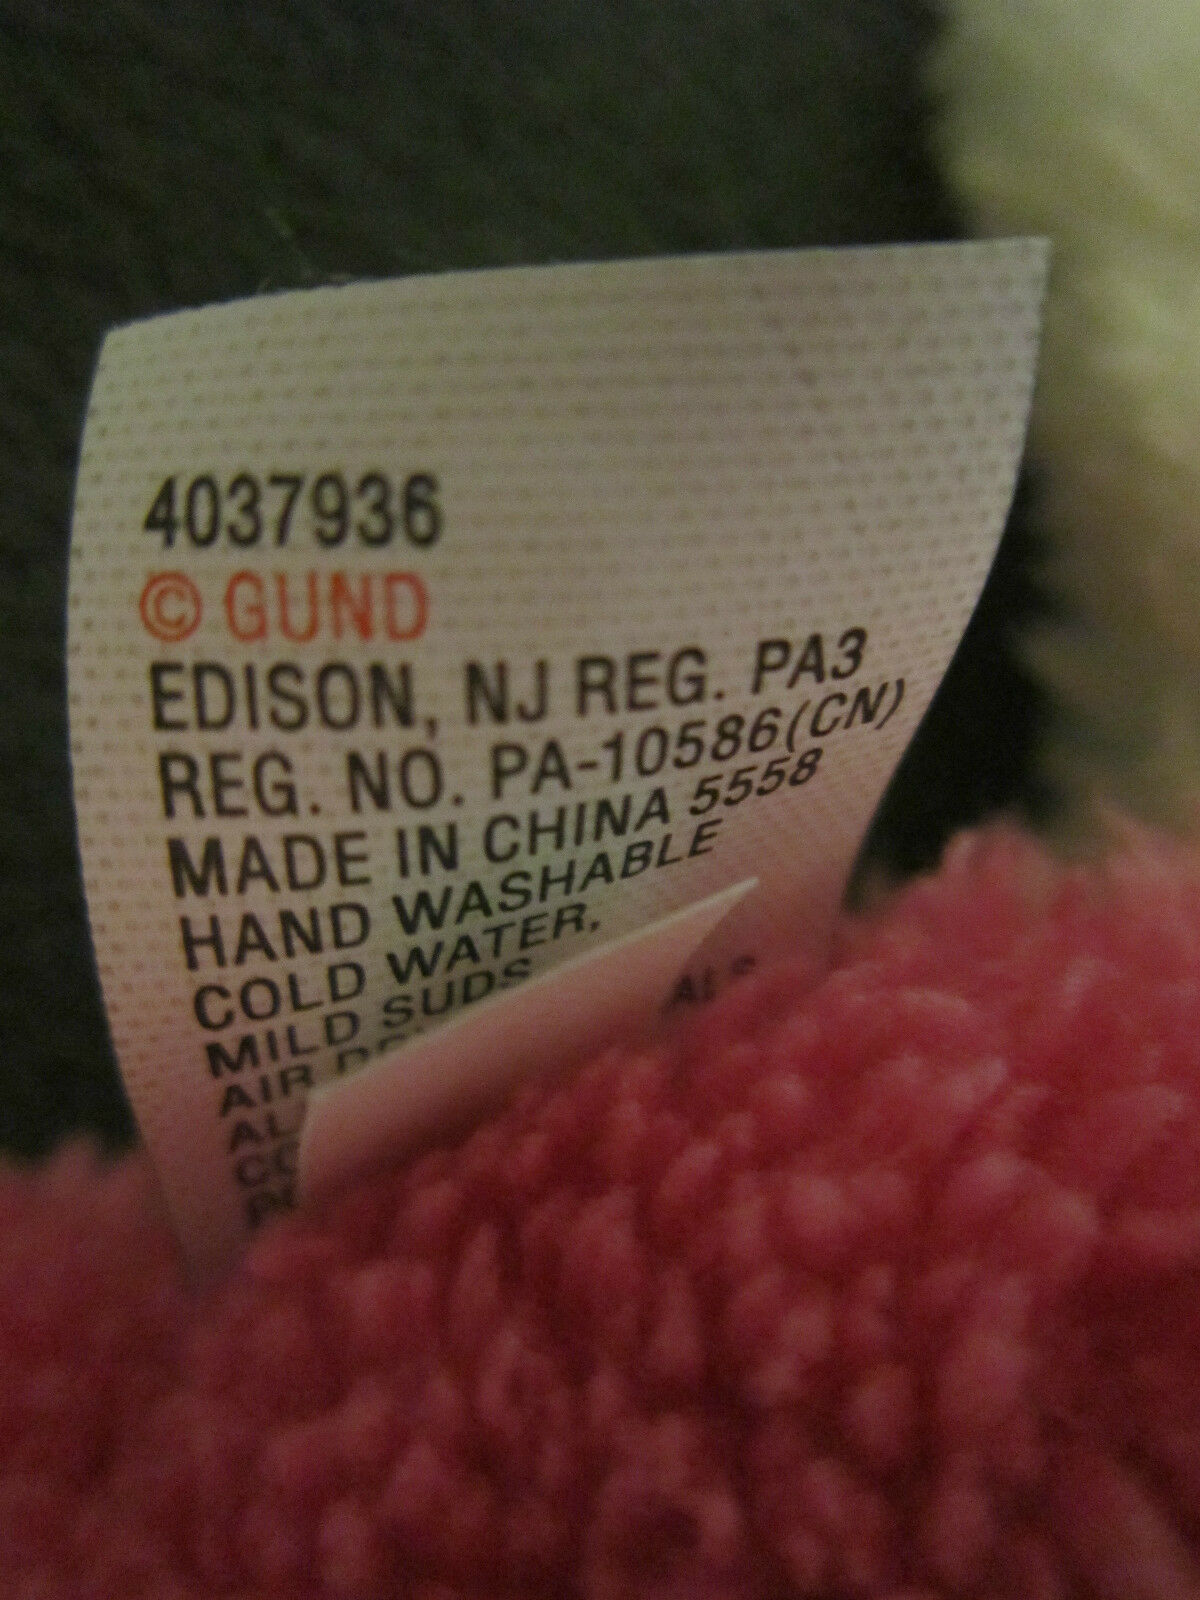 NWT GUND G5.0 Weiß SOFT PINK Weiß G5.0 PUPPY DOG PLUSH 4037936 9